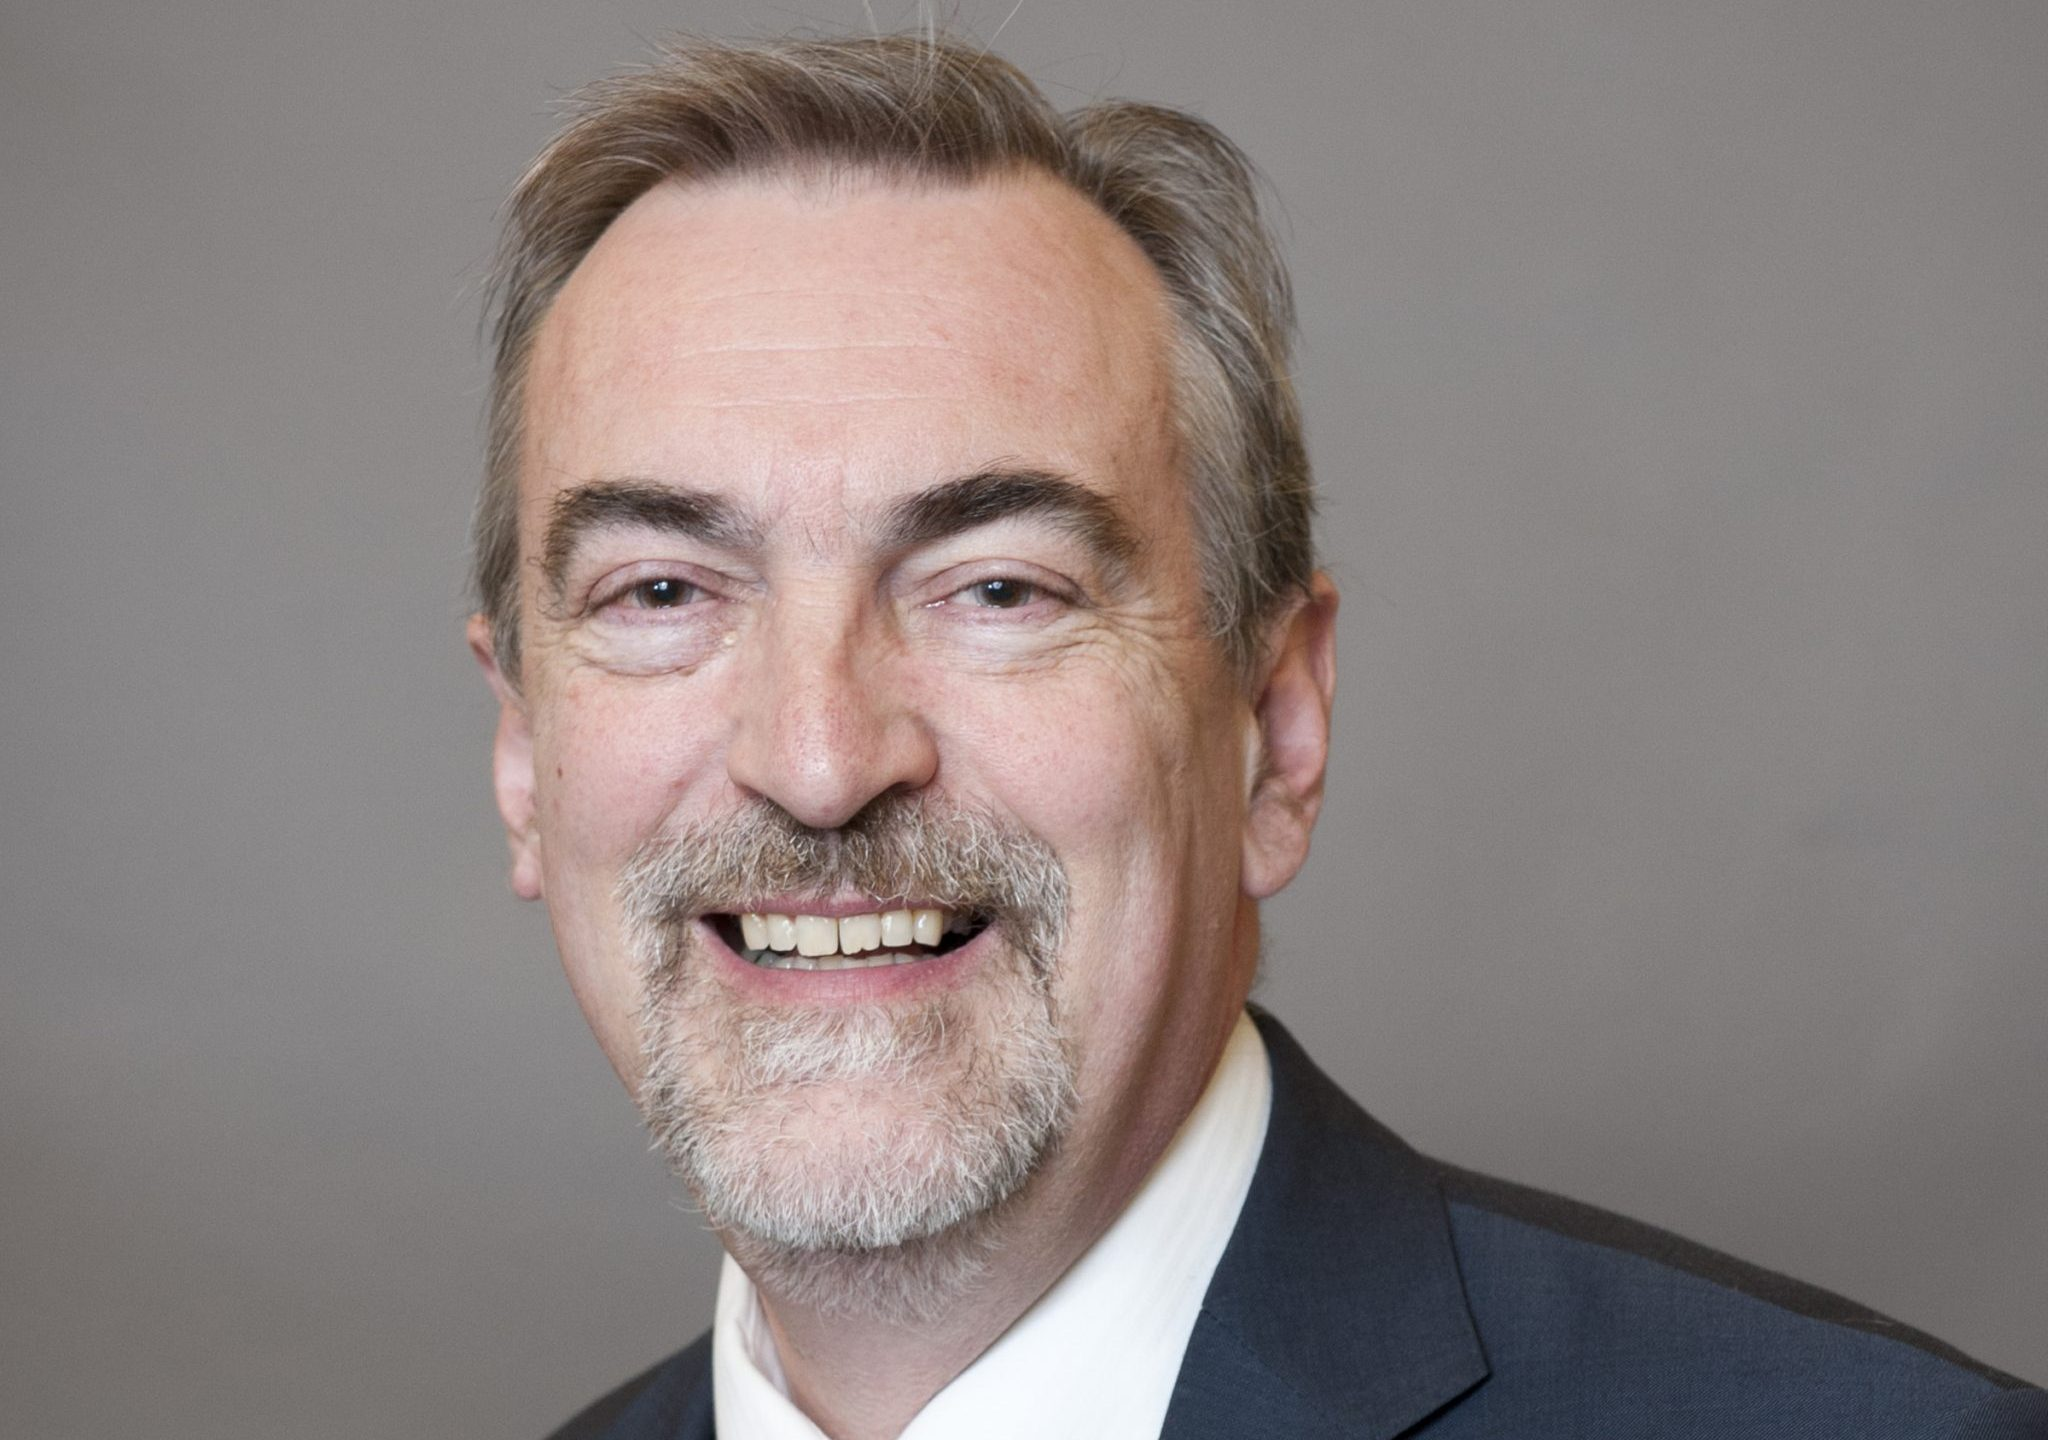 John Roles became the head of Leeds Museums & Galleries in 2004